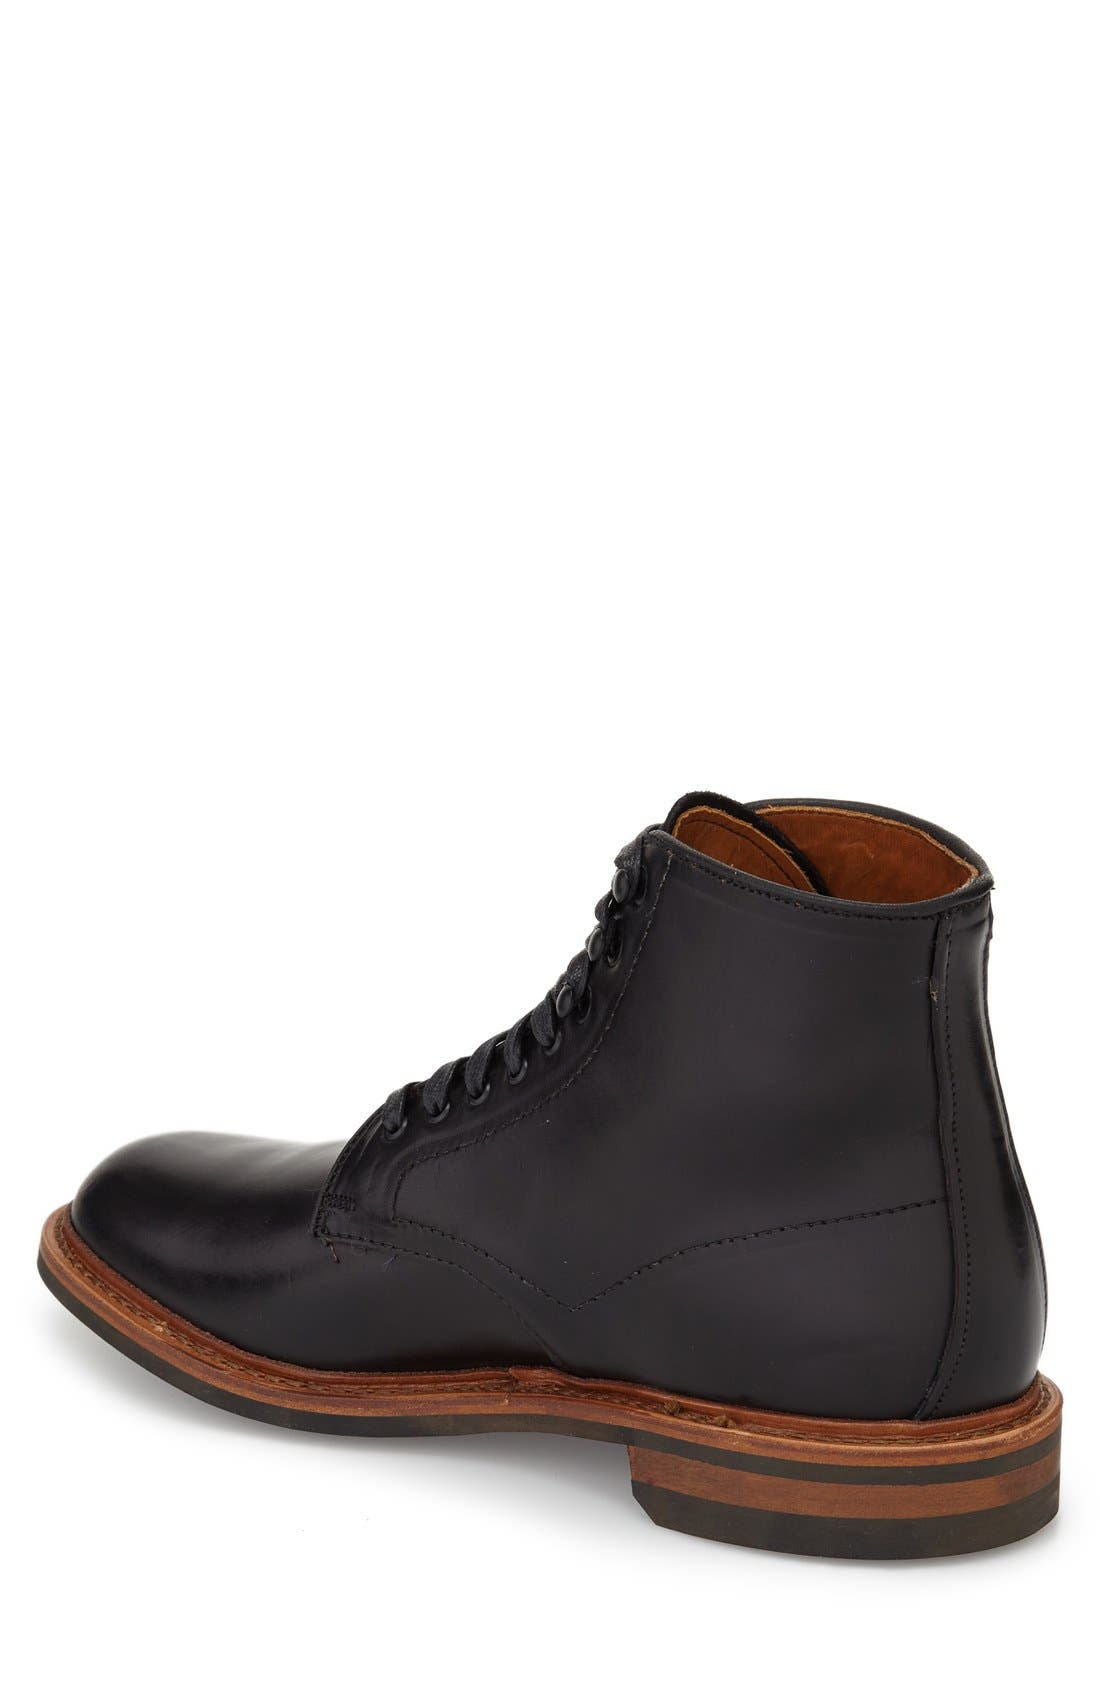 Alternate Image 2  - Allen Edmonds 'Higgins Mill' Plain Toe Boot (Men)